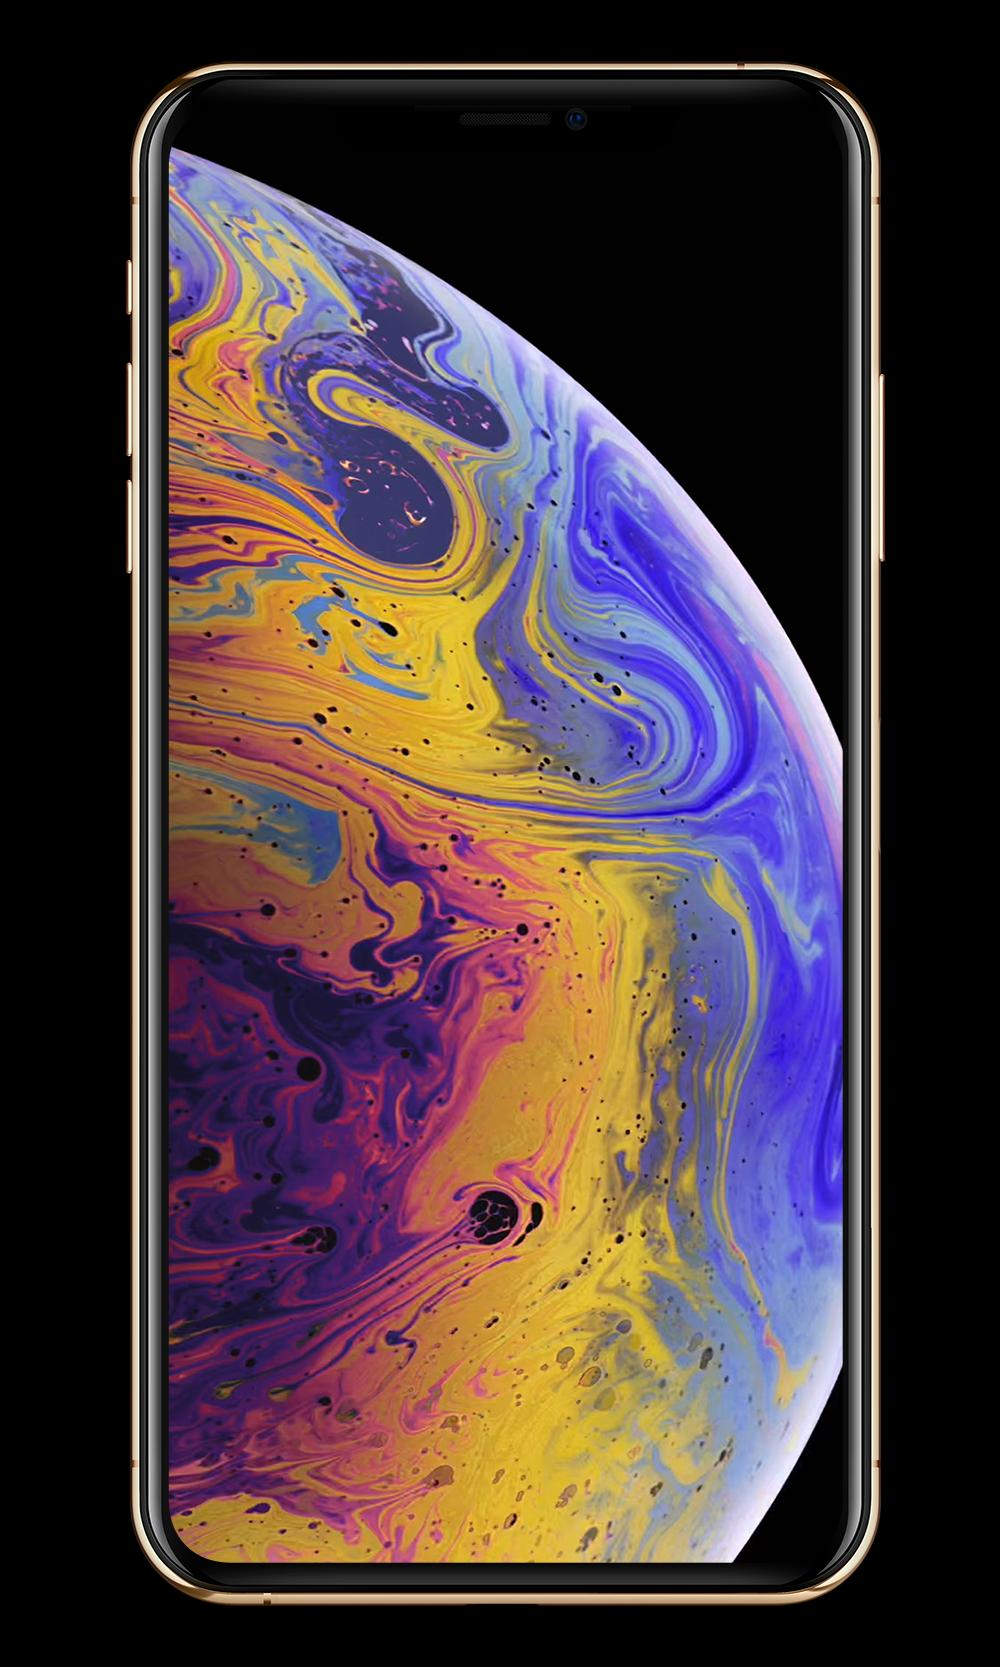 Wallpapers For Iphone Xs Xr Xmax Wallpaper I Os 13 For Android Apk